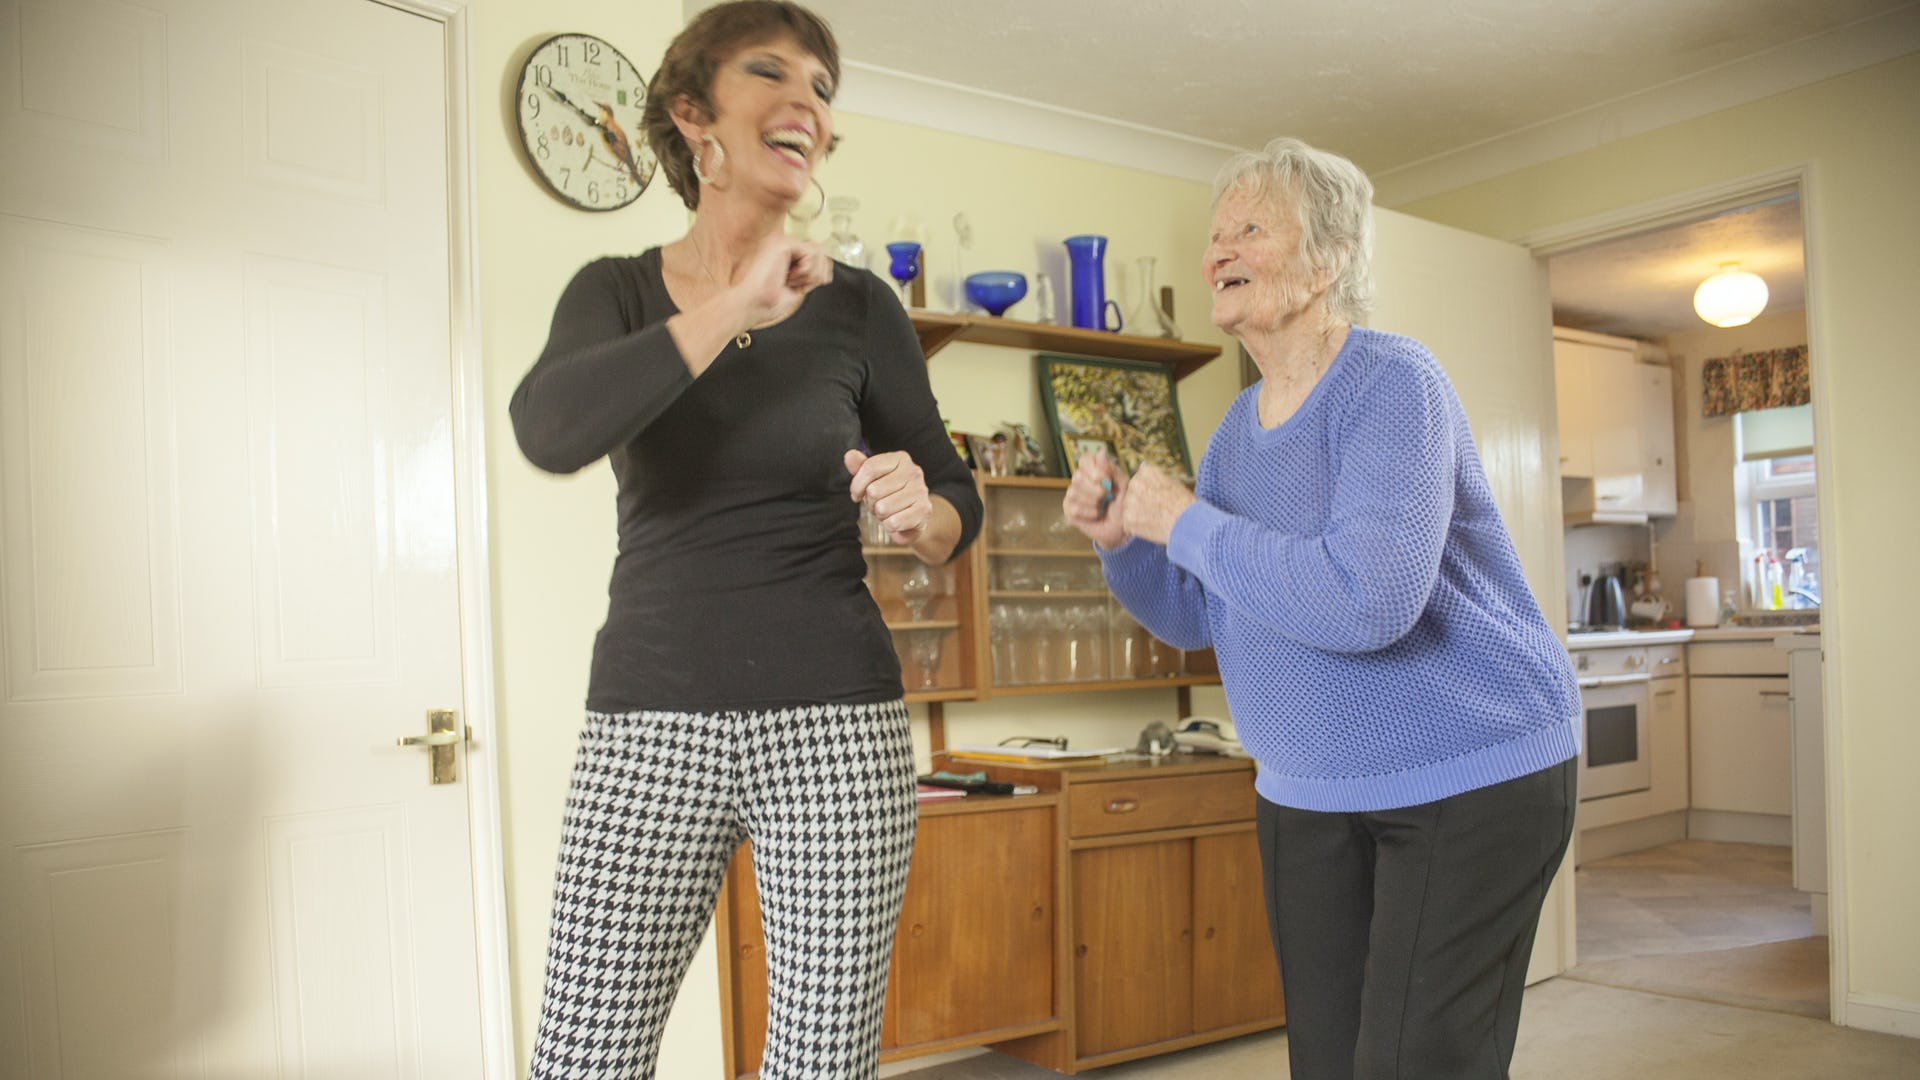 Carer and Elderly lady dancing